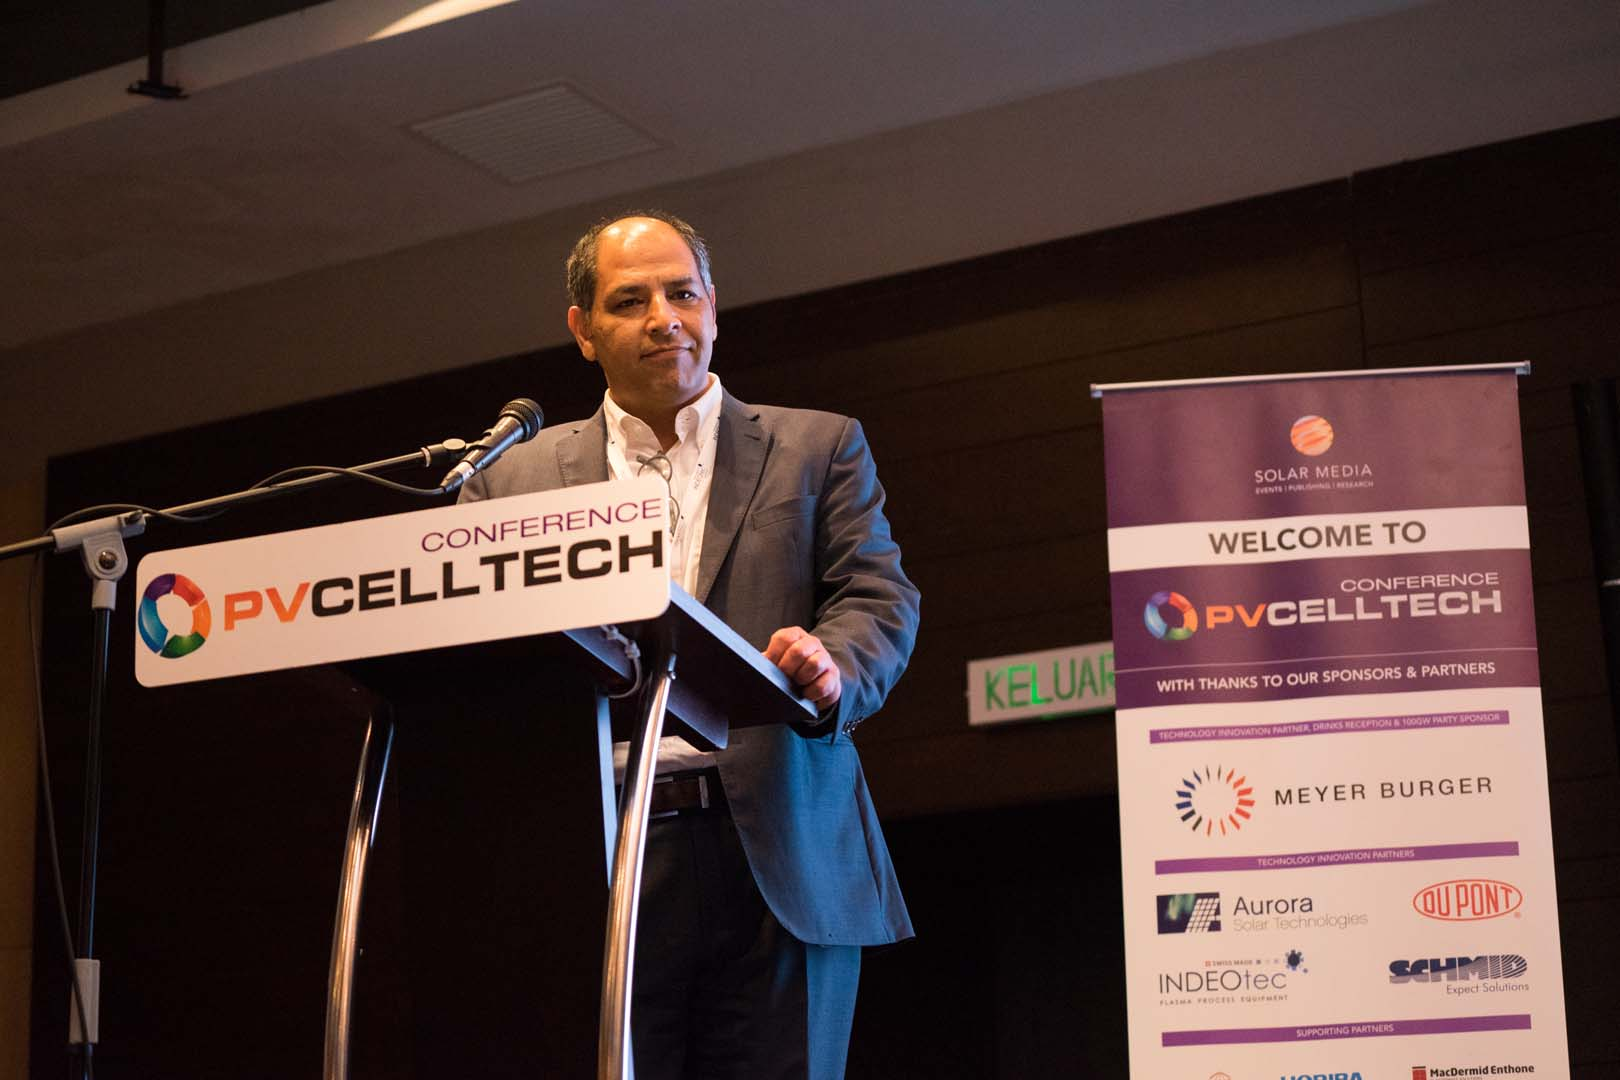 Omid Shojaei, the CEO of heterojunction production equipment supplier INDEOtec, speaking at PV CellTech 2018. Credit: Solar Media